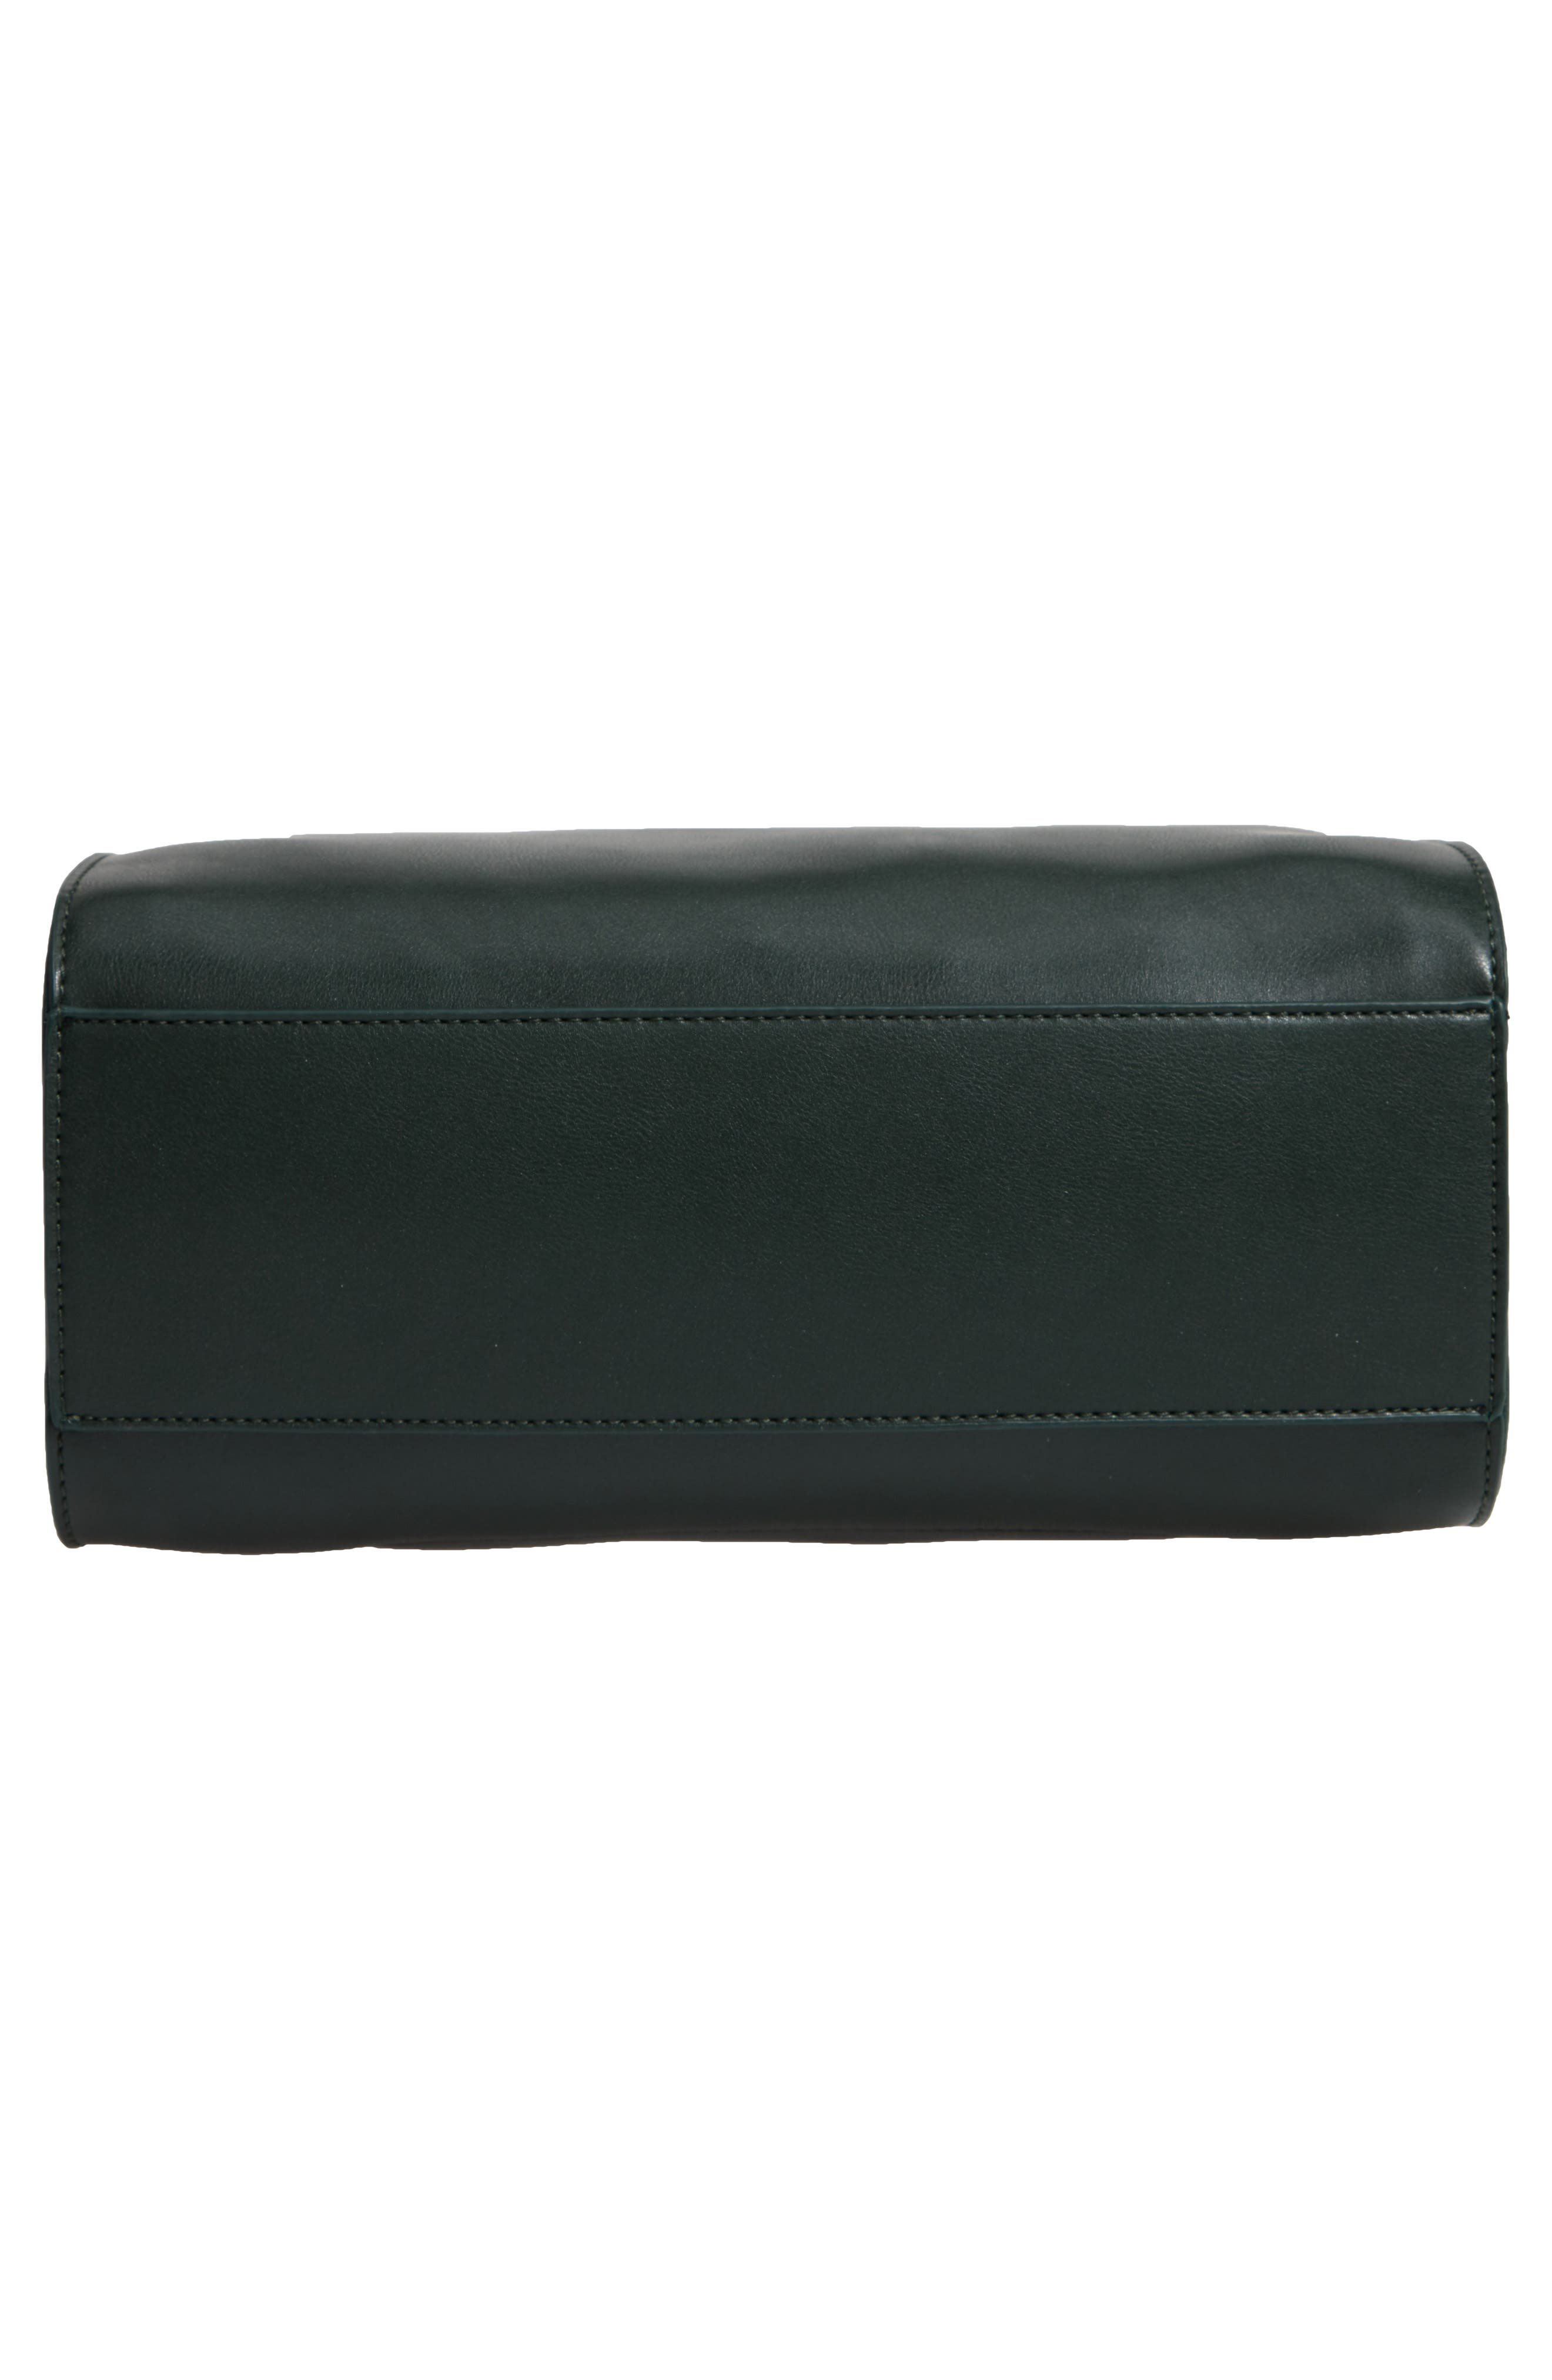 Whipstitch Handle Faux Leather Crossbody Bag,                             Alternate thumbnail 6, color,                             DARK GREEN